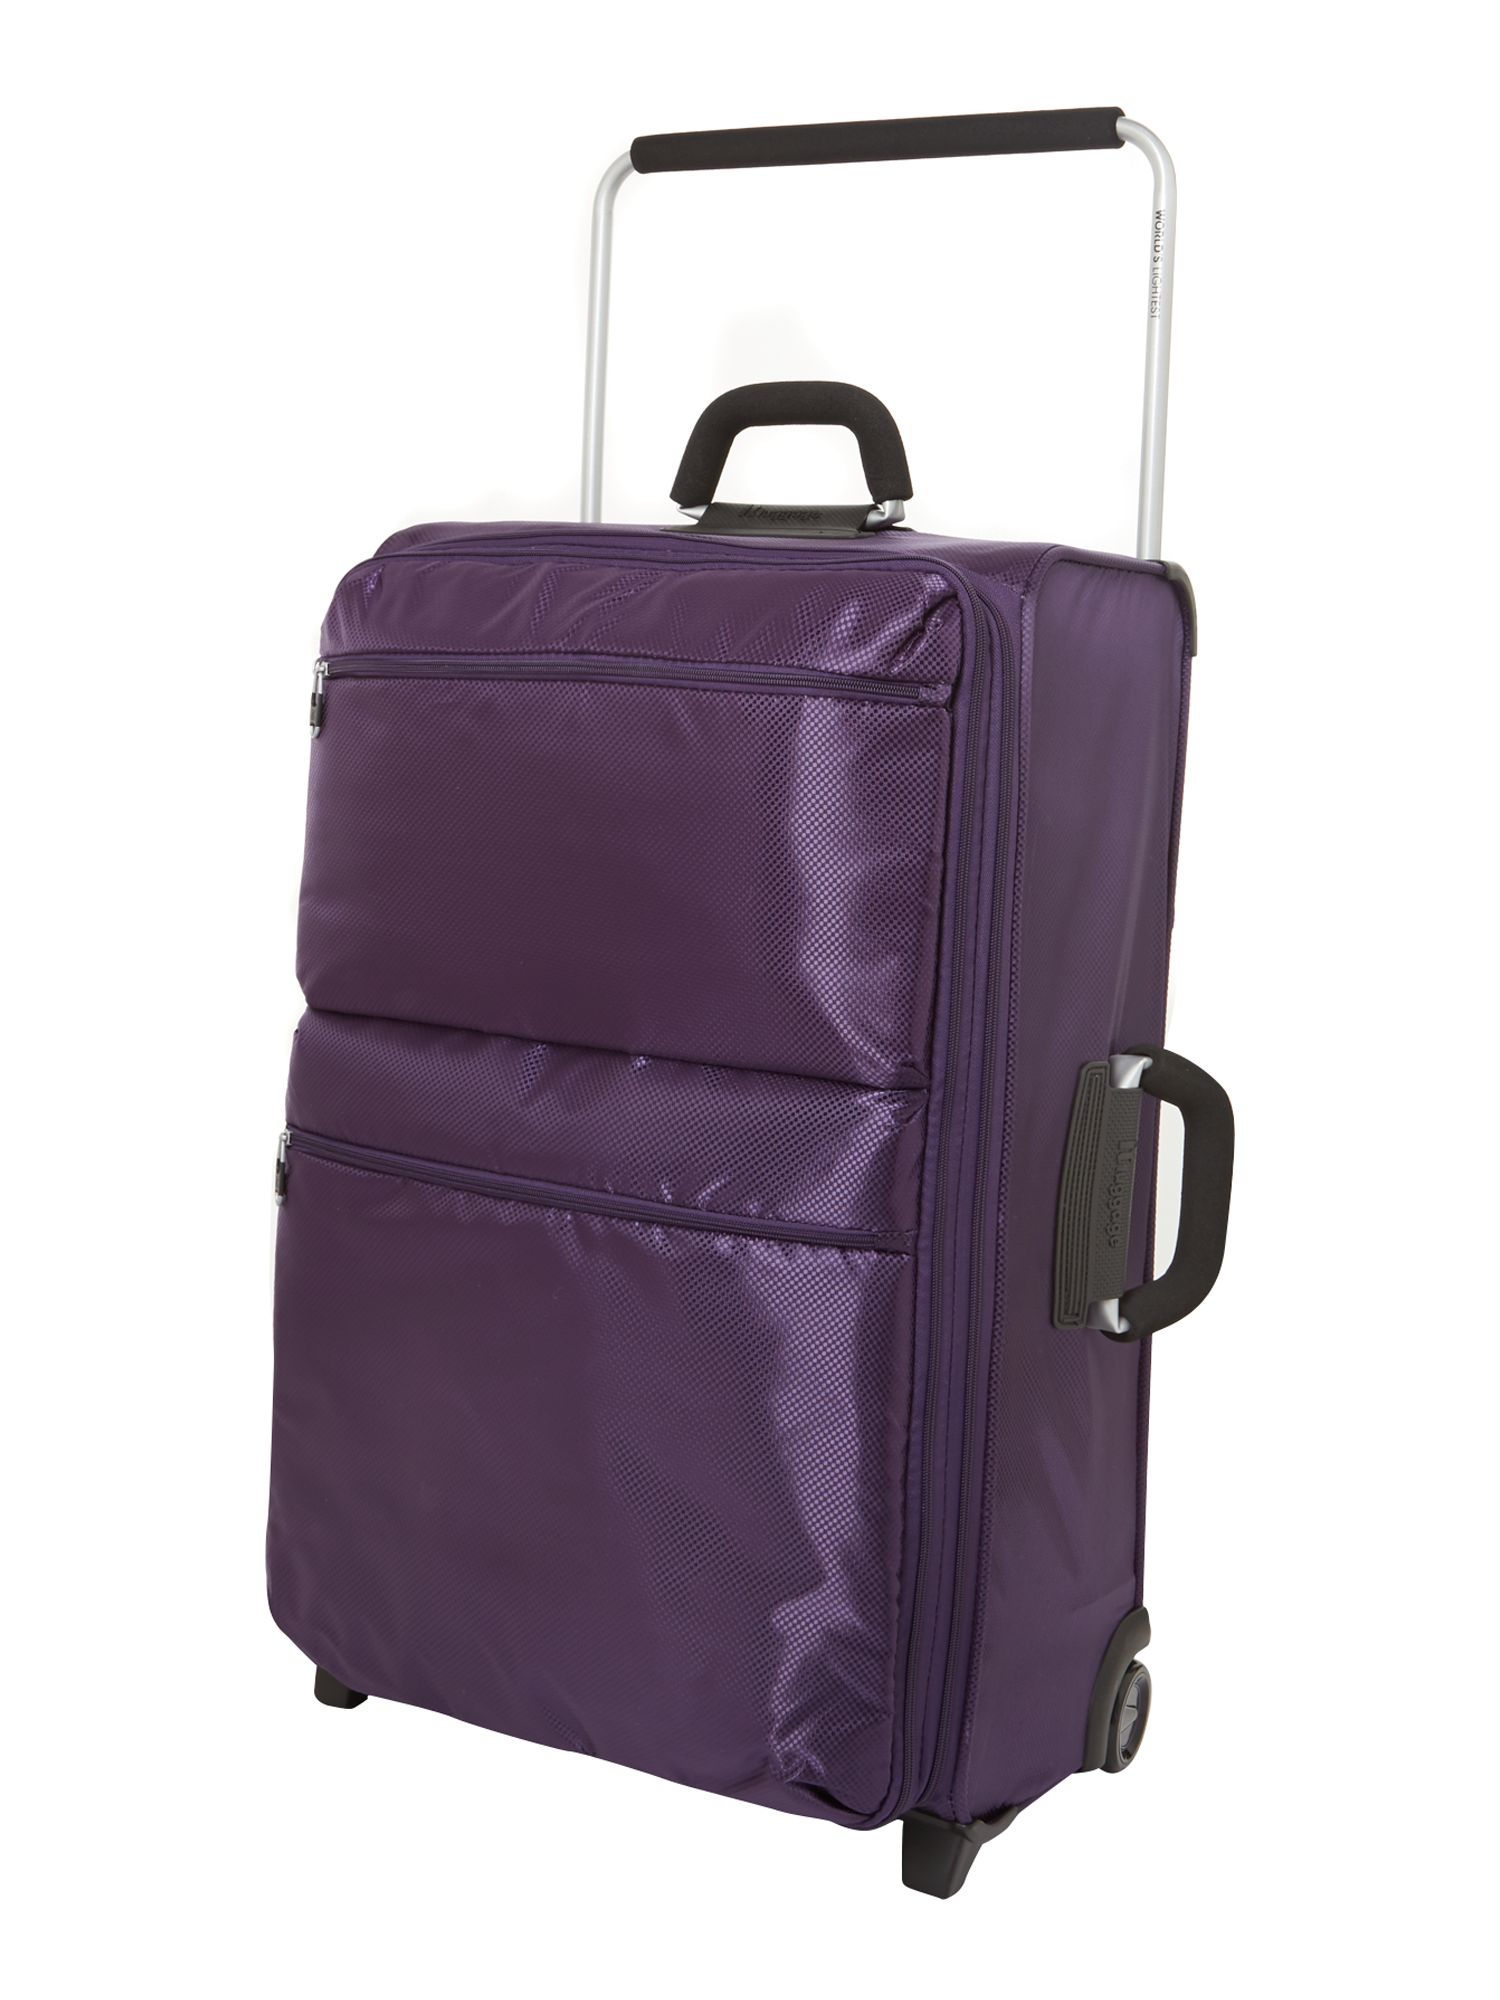 IT02 large purple case